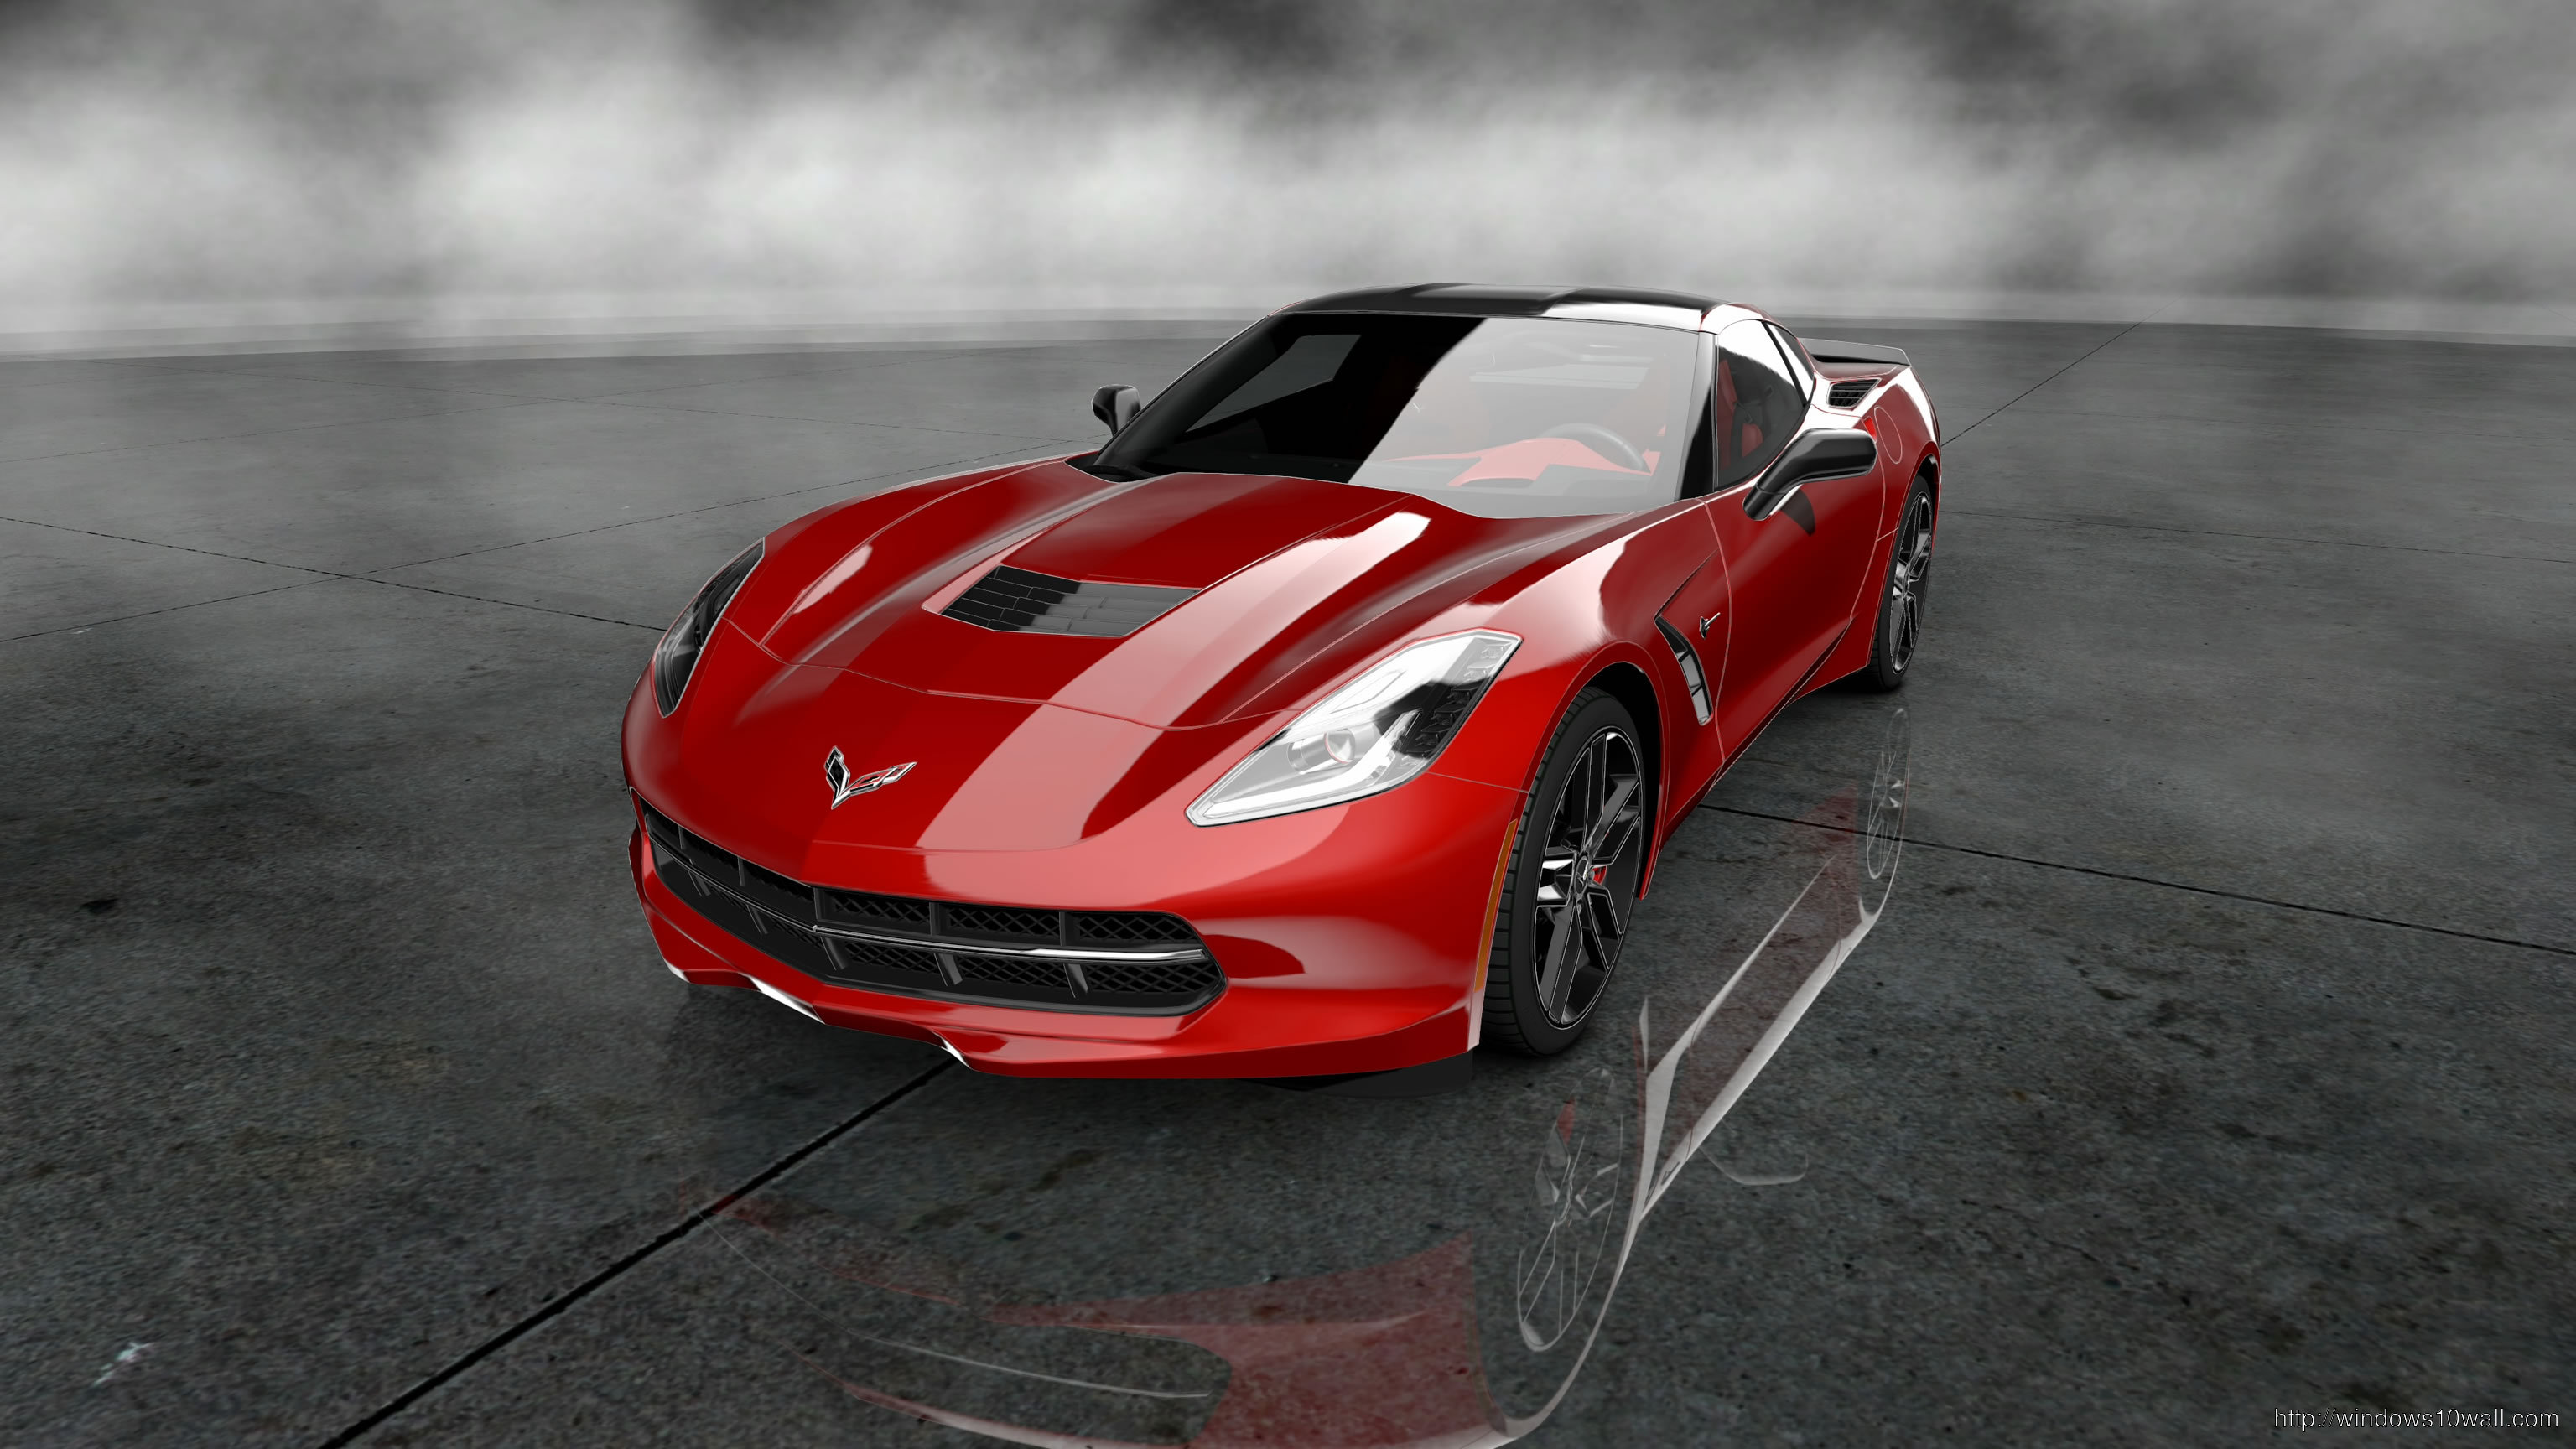 2014 Corvette Stingray Red Background Wallpaper